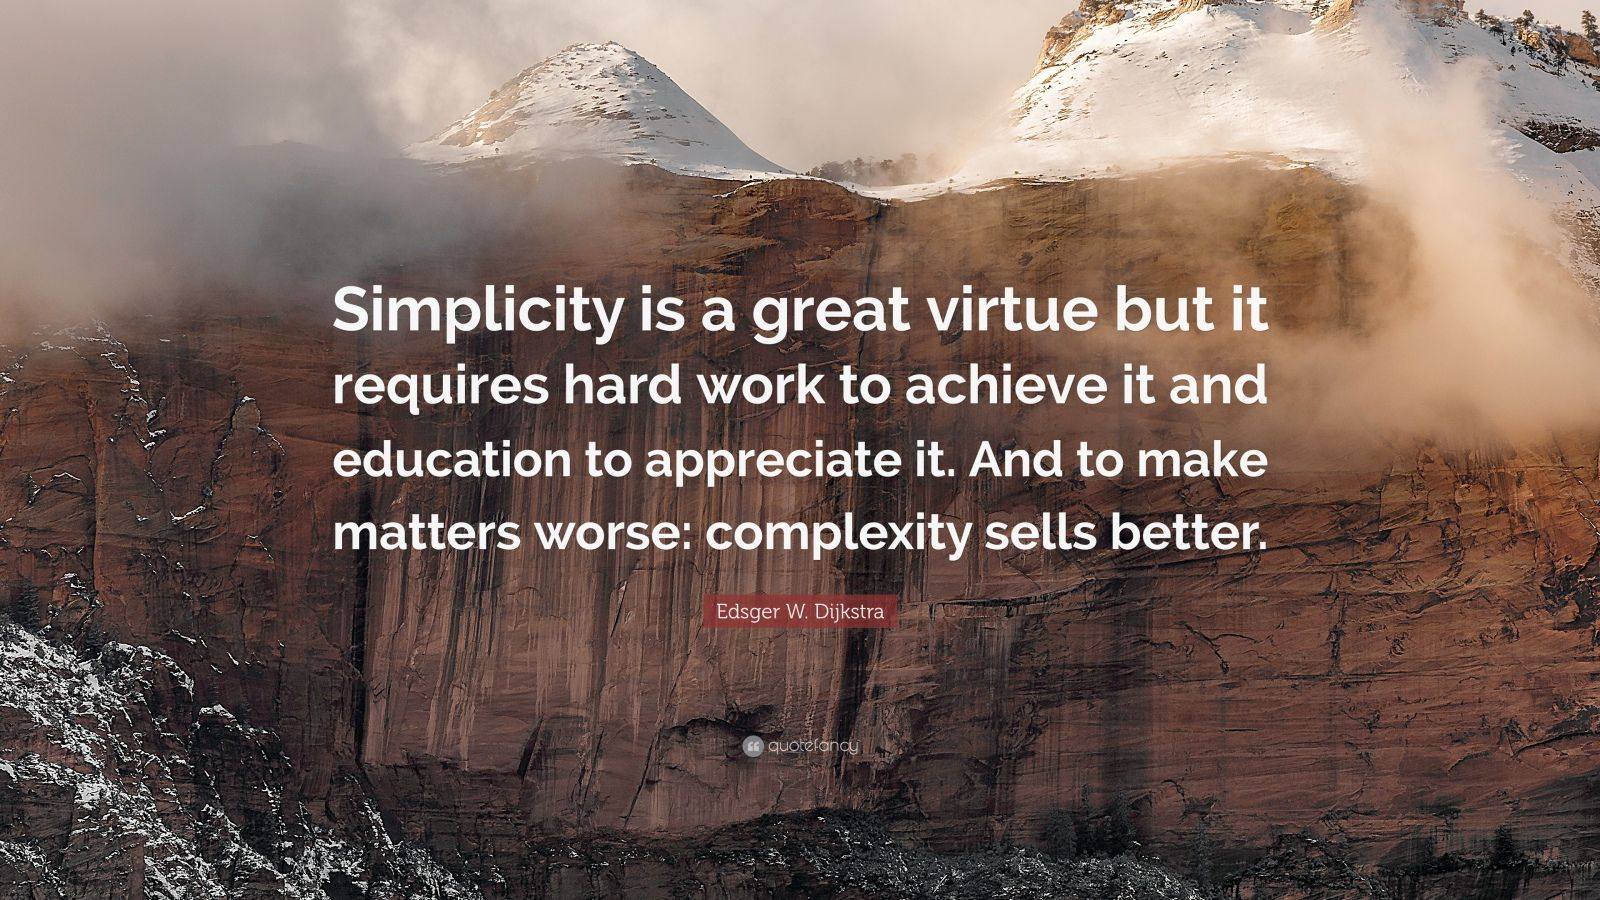 "Edsger W. Dijkstra Quote: ""Simplicity is a great virtue but it requires hard work to achieve it and education to appreciate it. And to make matters worse: complexity sells better."""